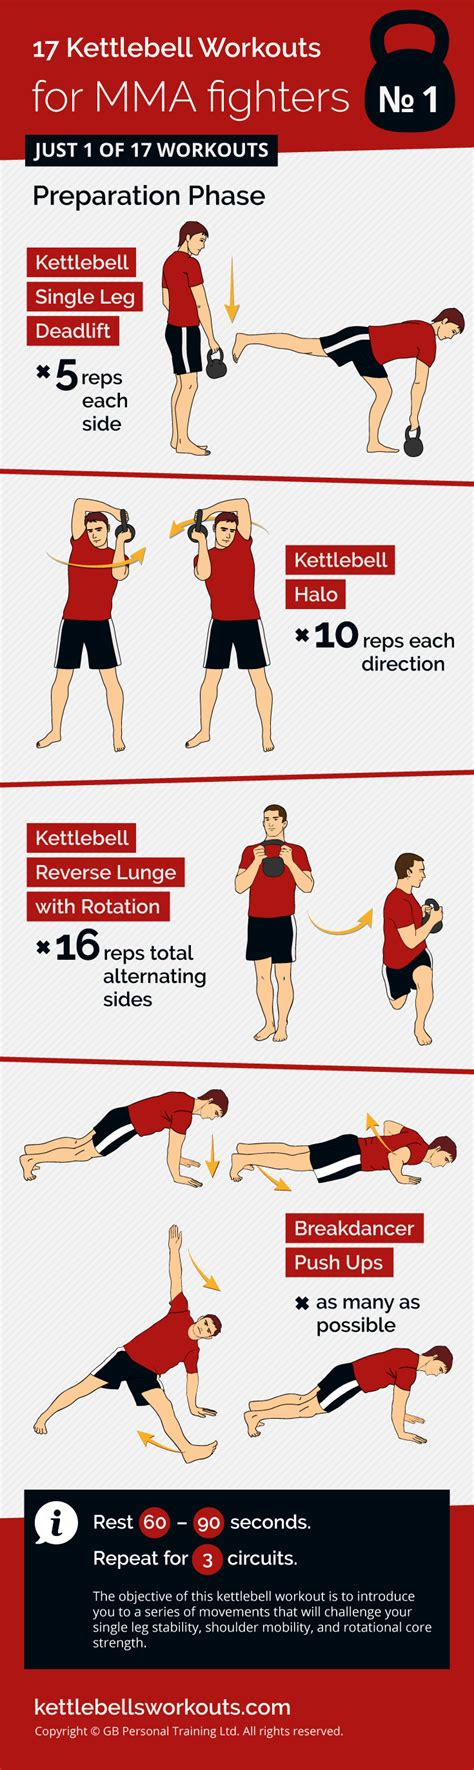 kettlebell mma workouts workout strength fighters core routines kettlebellsworkouts fun